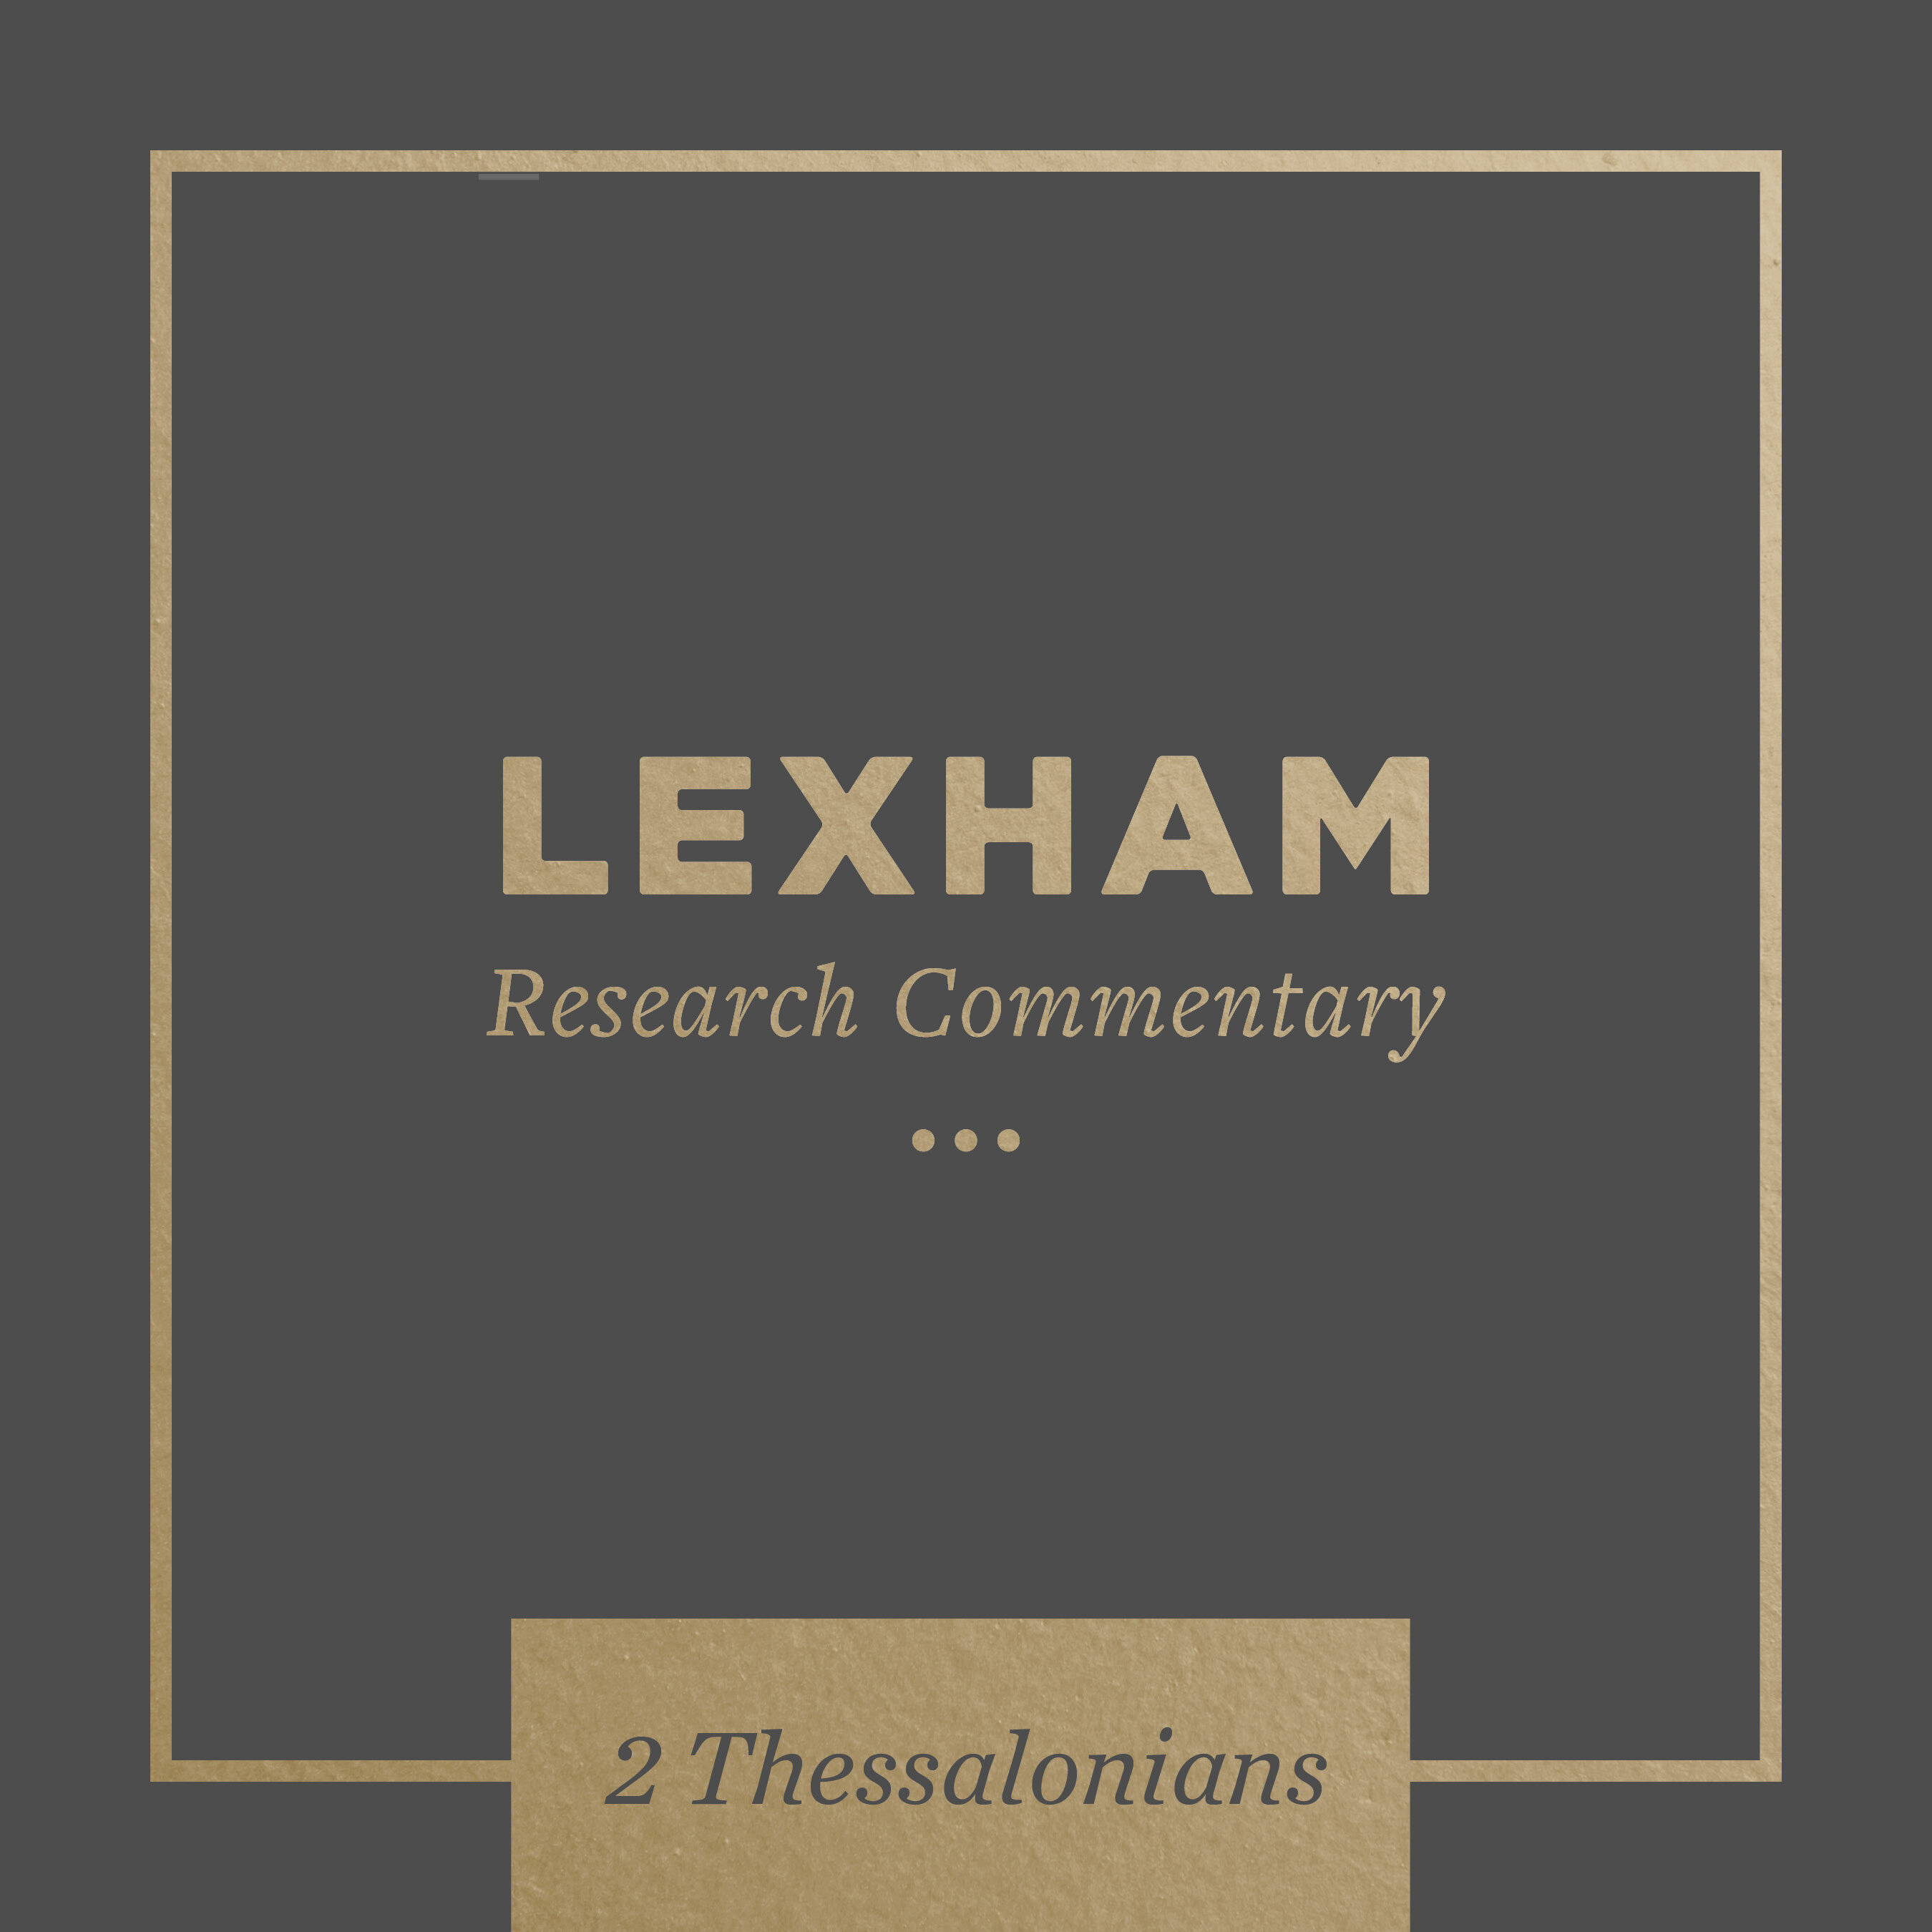 Lexham Research Commentary: 2 Thessalonians